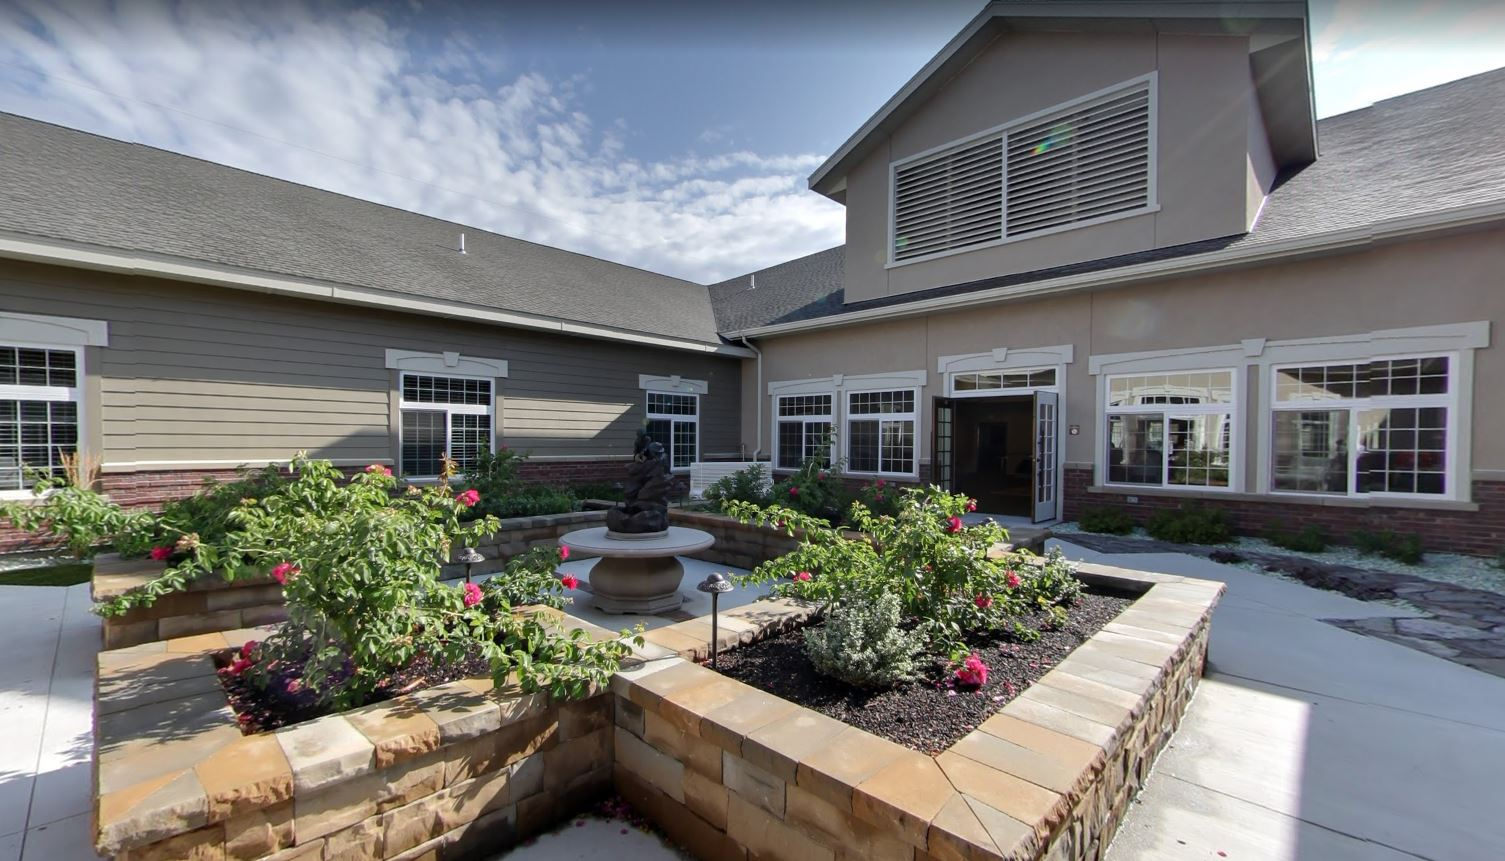 -carriage cove rexburg idaho tanabell health services garden patio